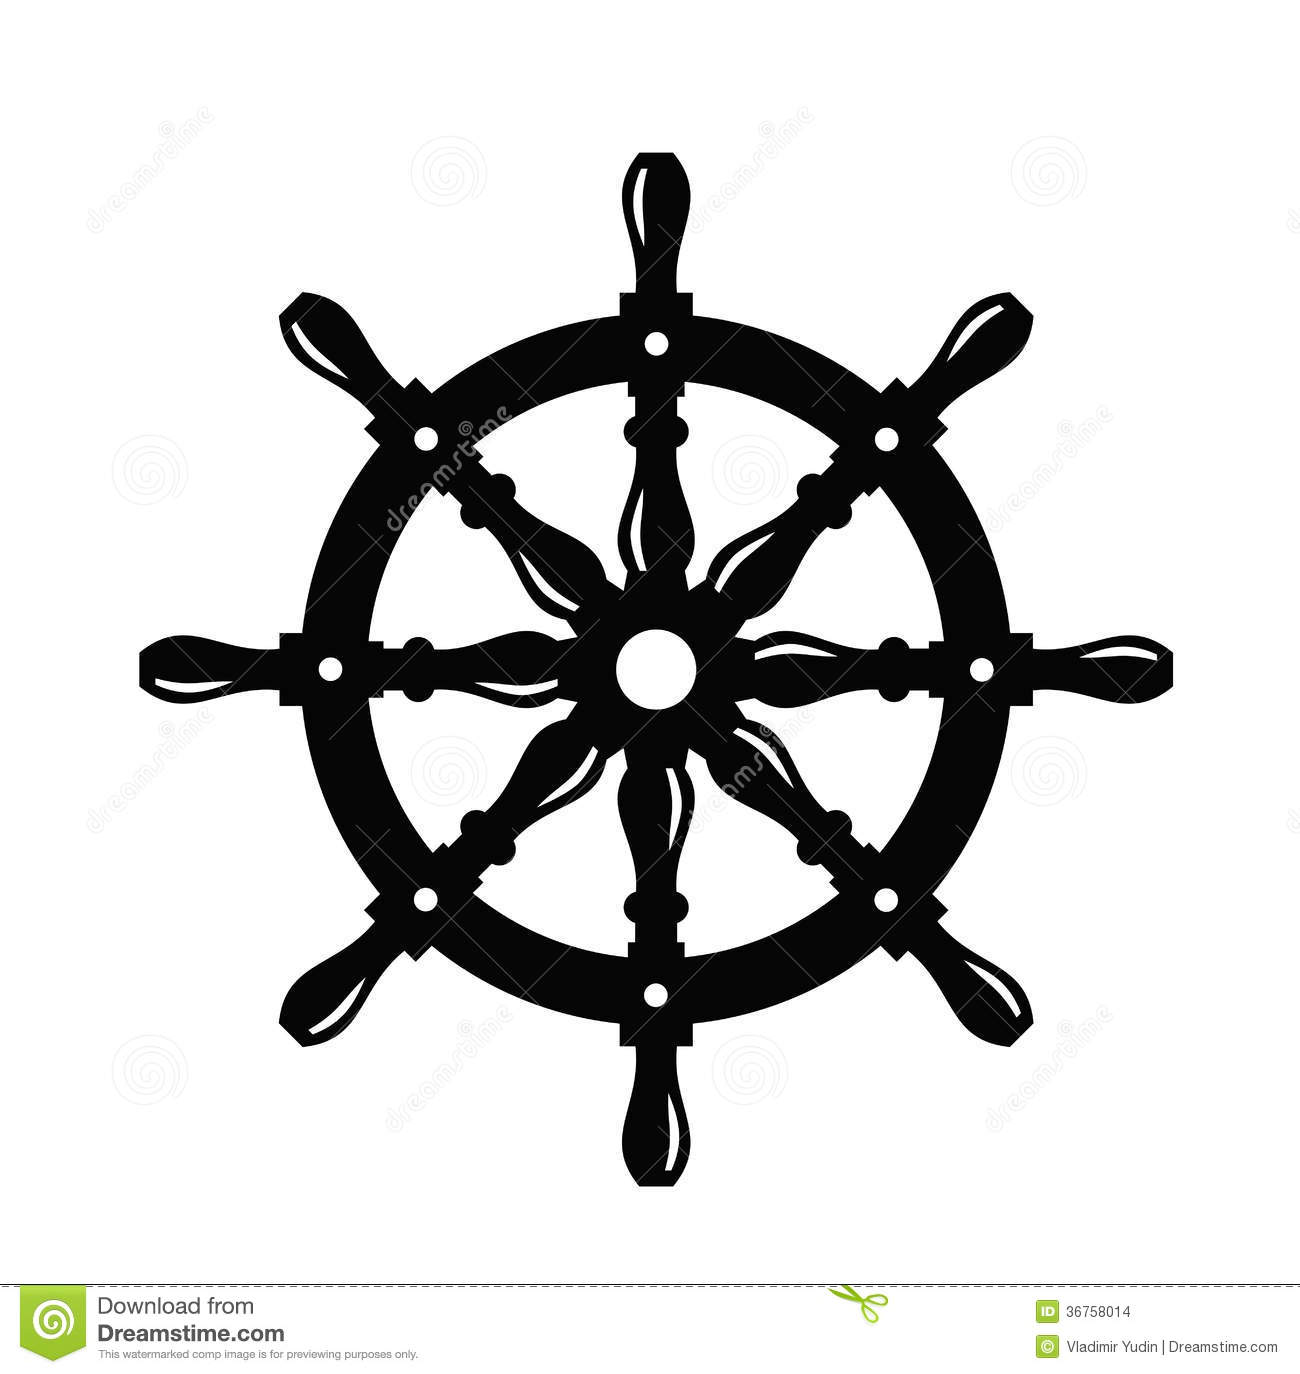 clipart ship steering wheel - photo #48